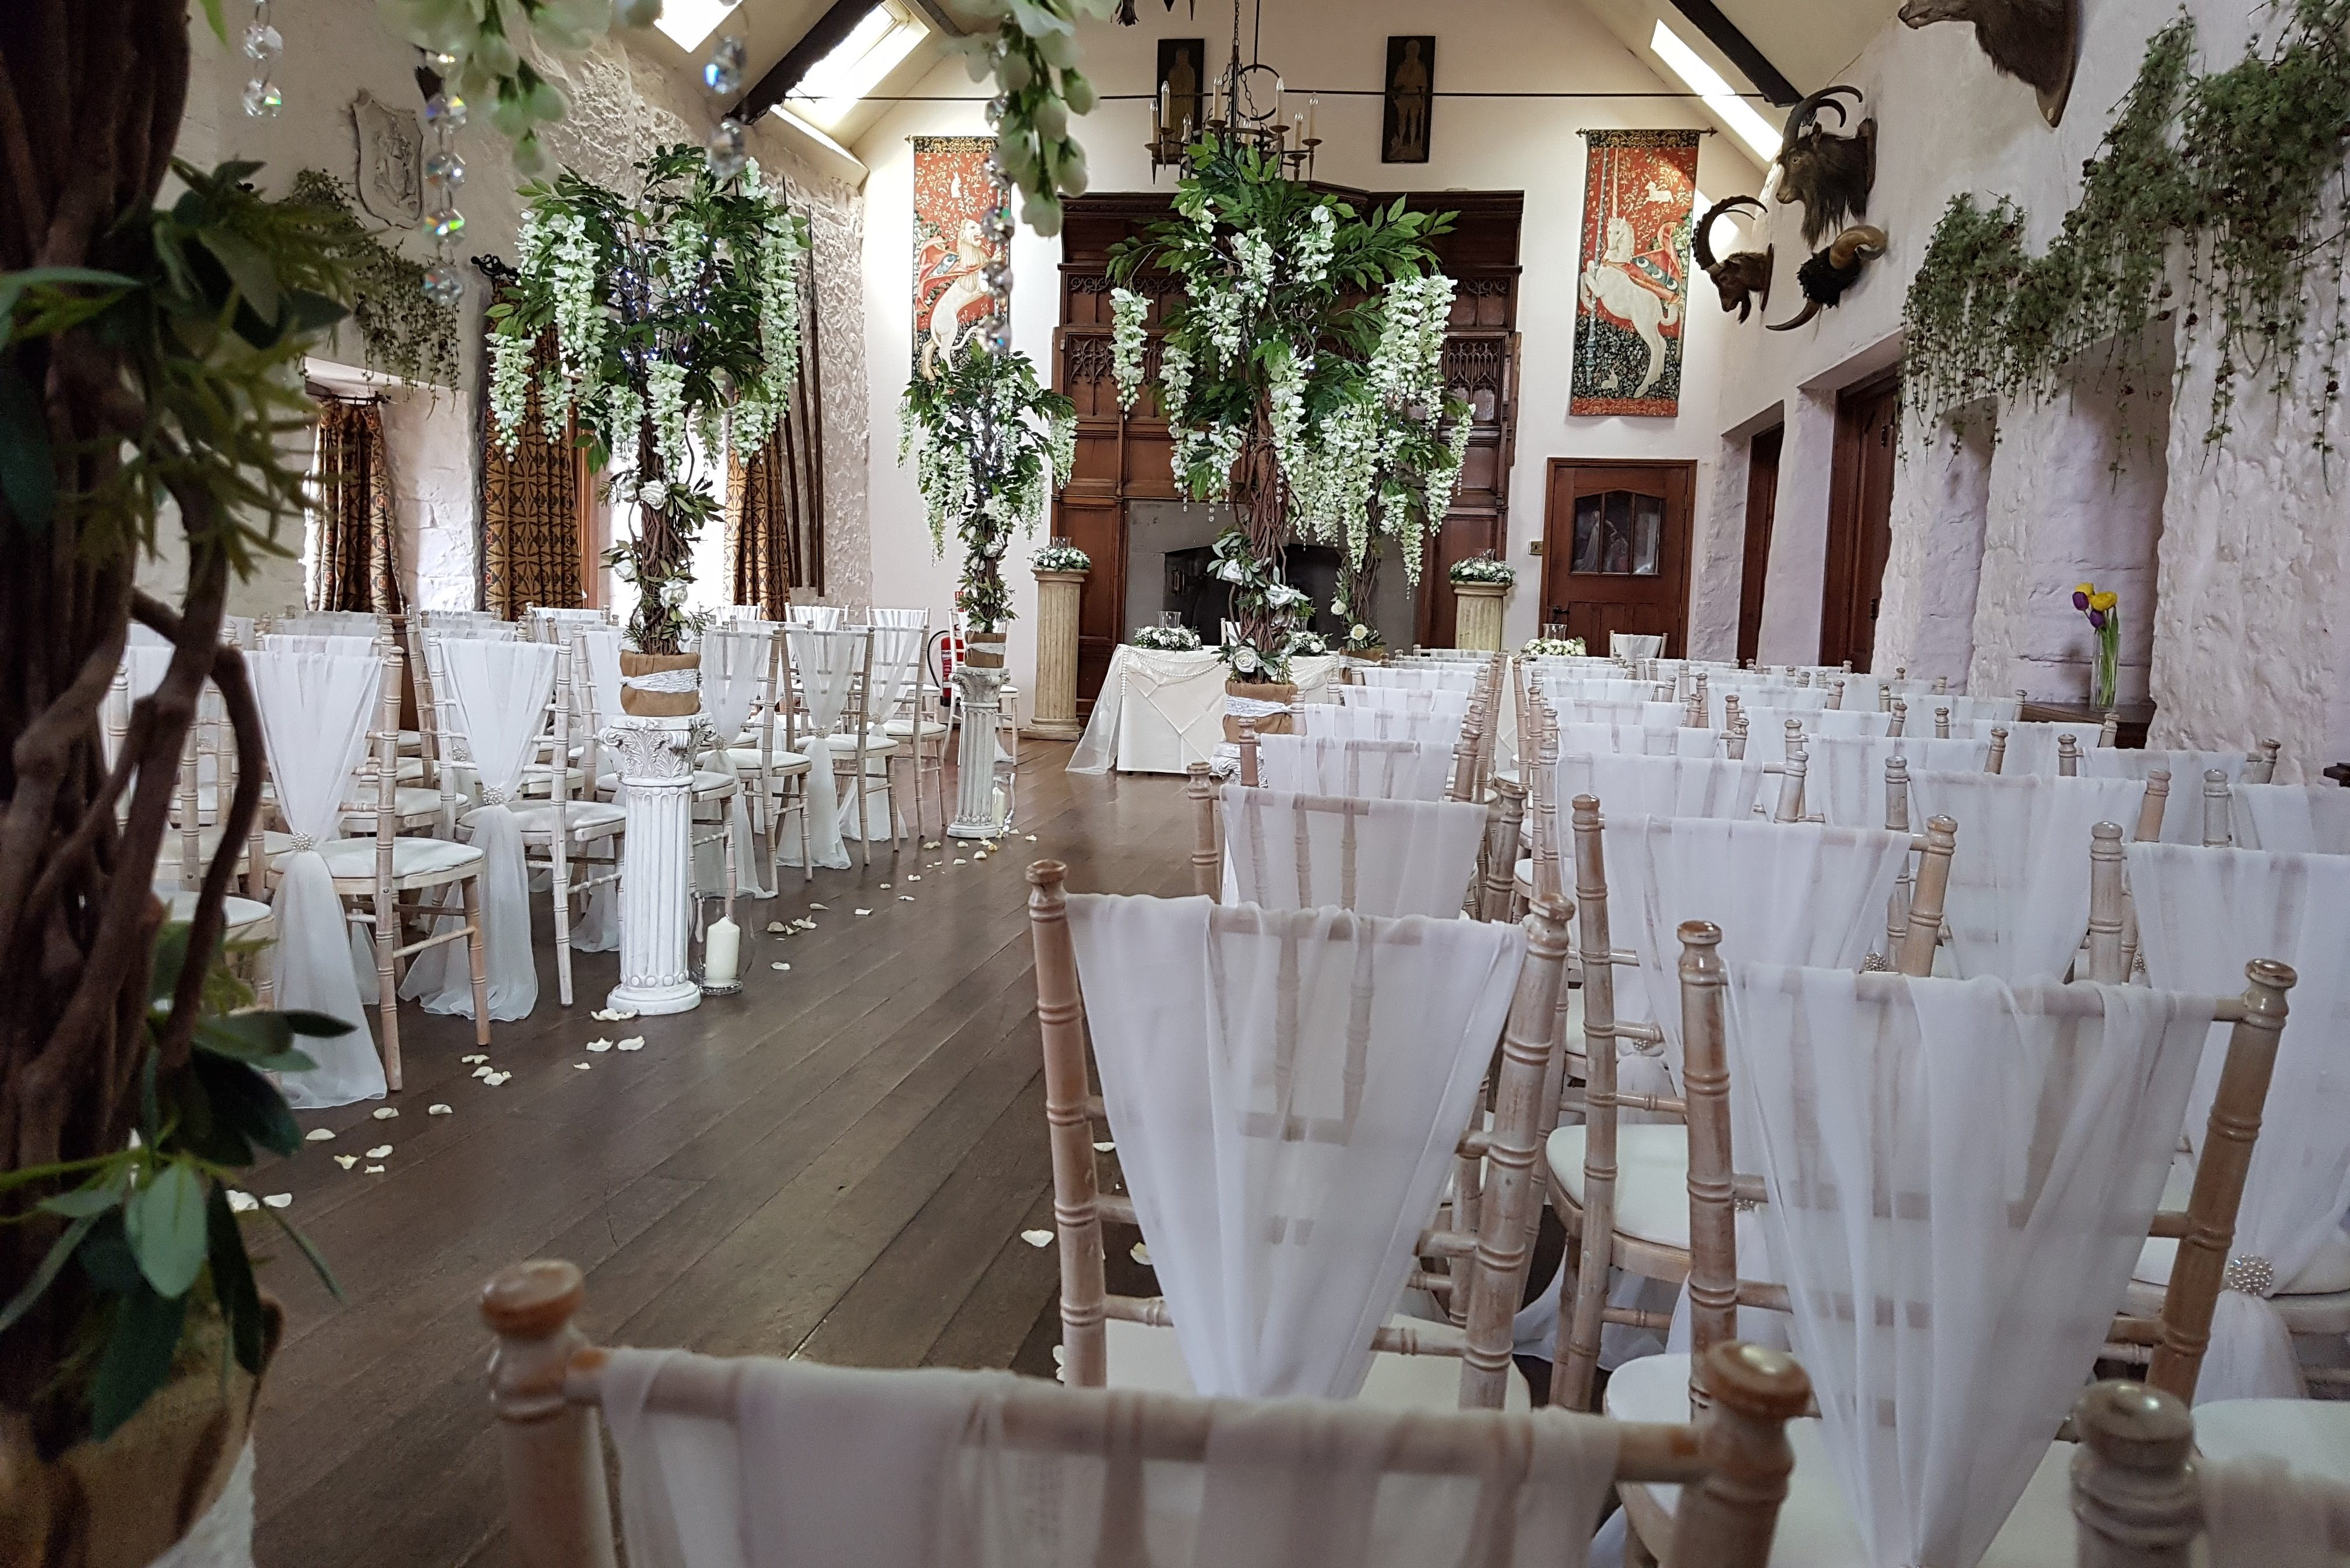 chair covers for hire south wales alera elusion office uk starlight events home